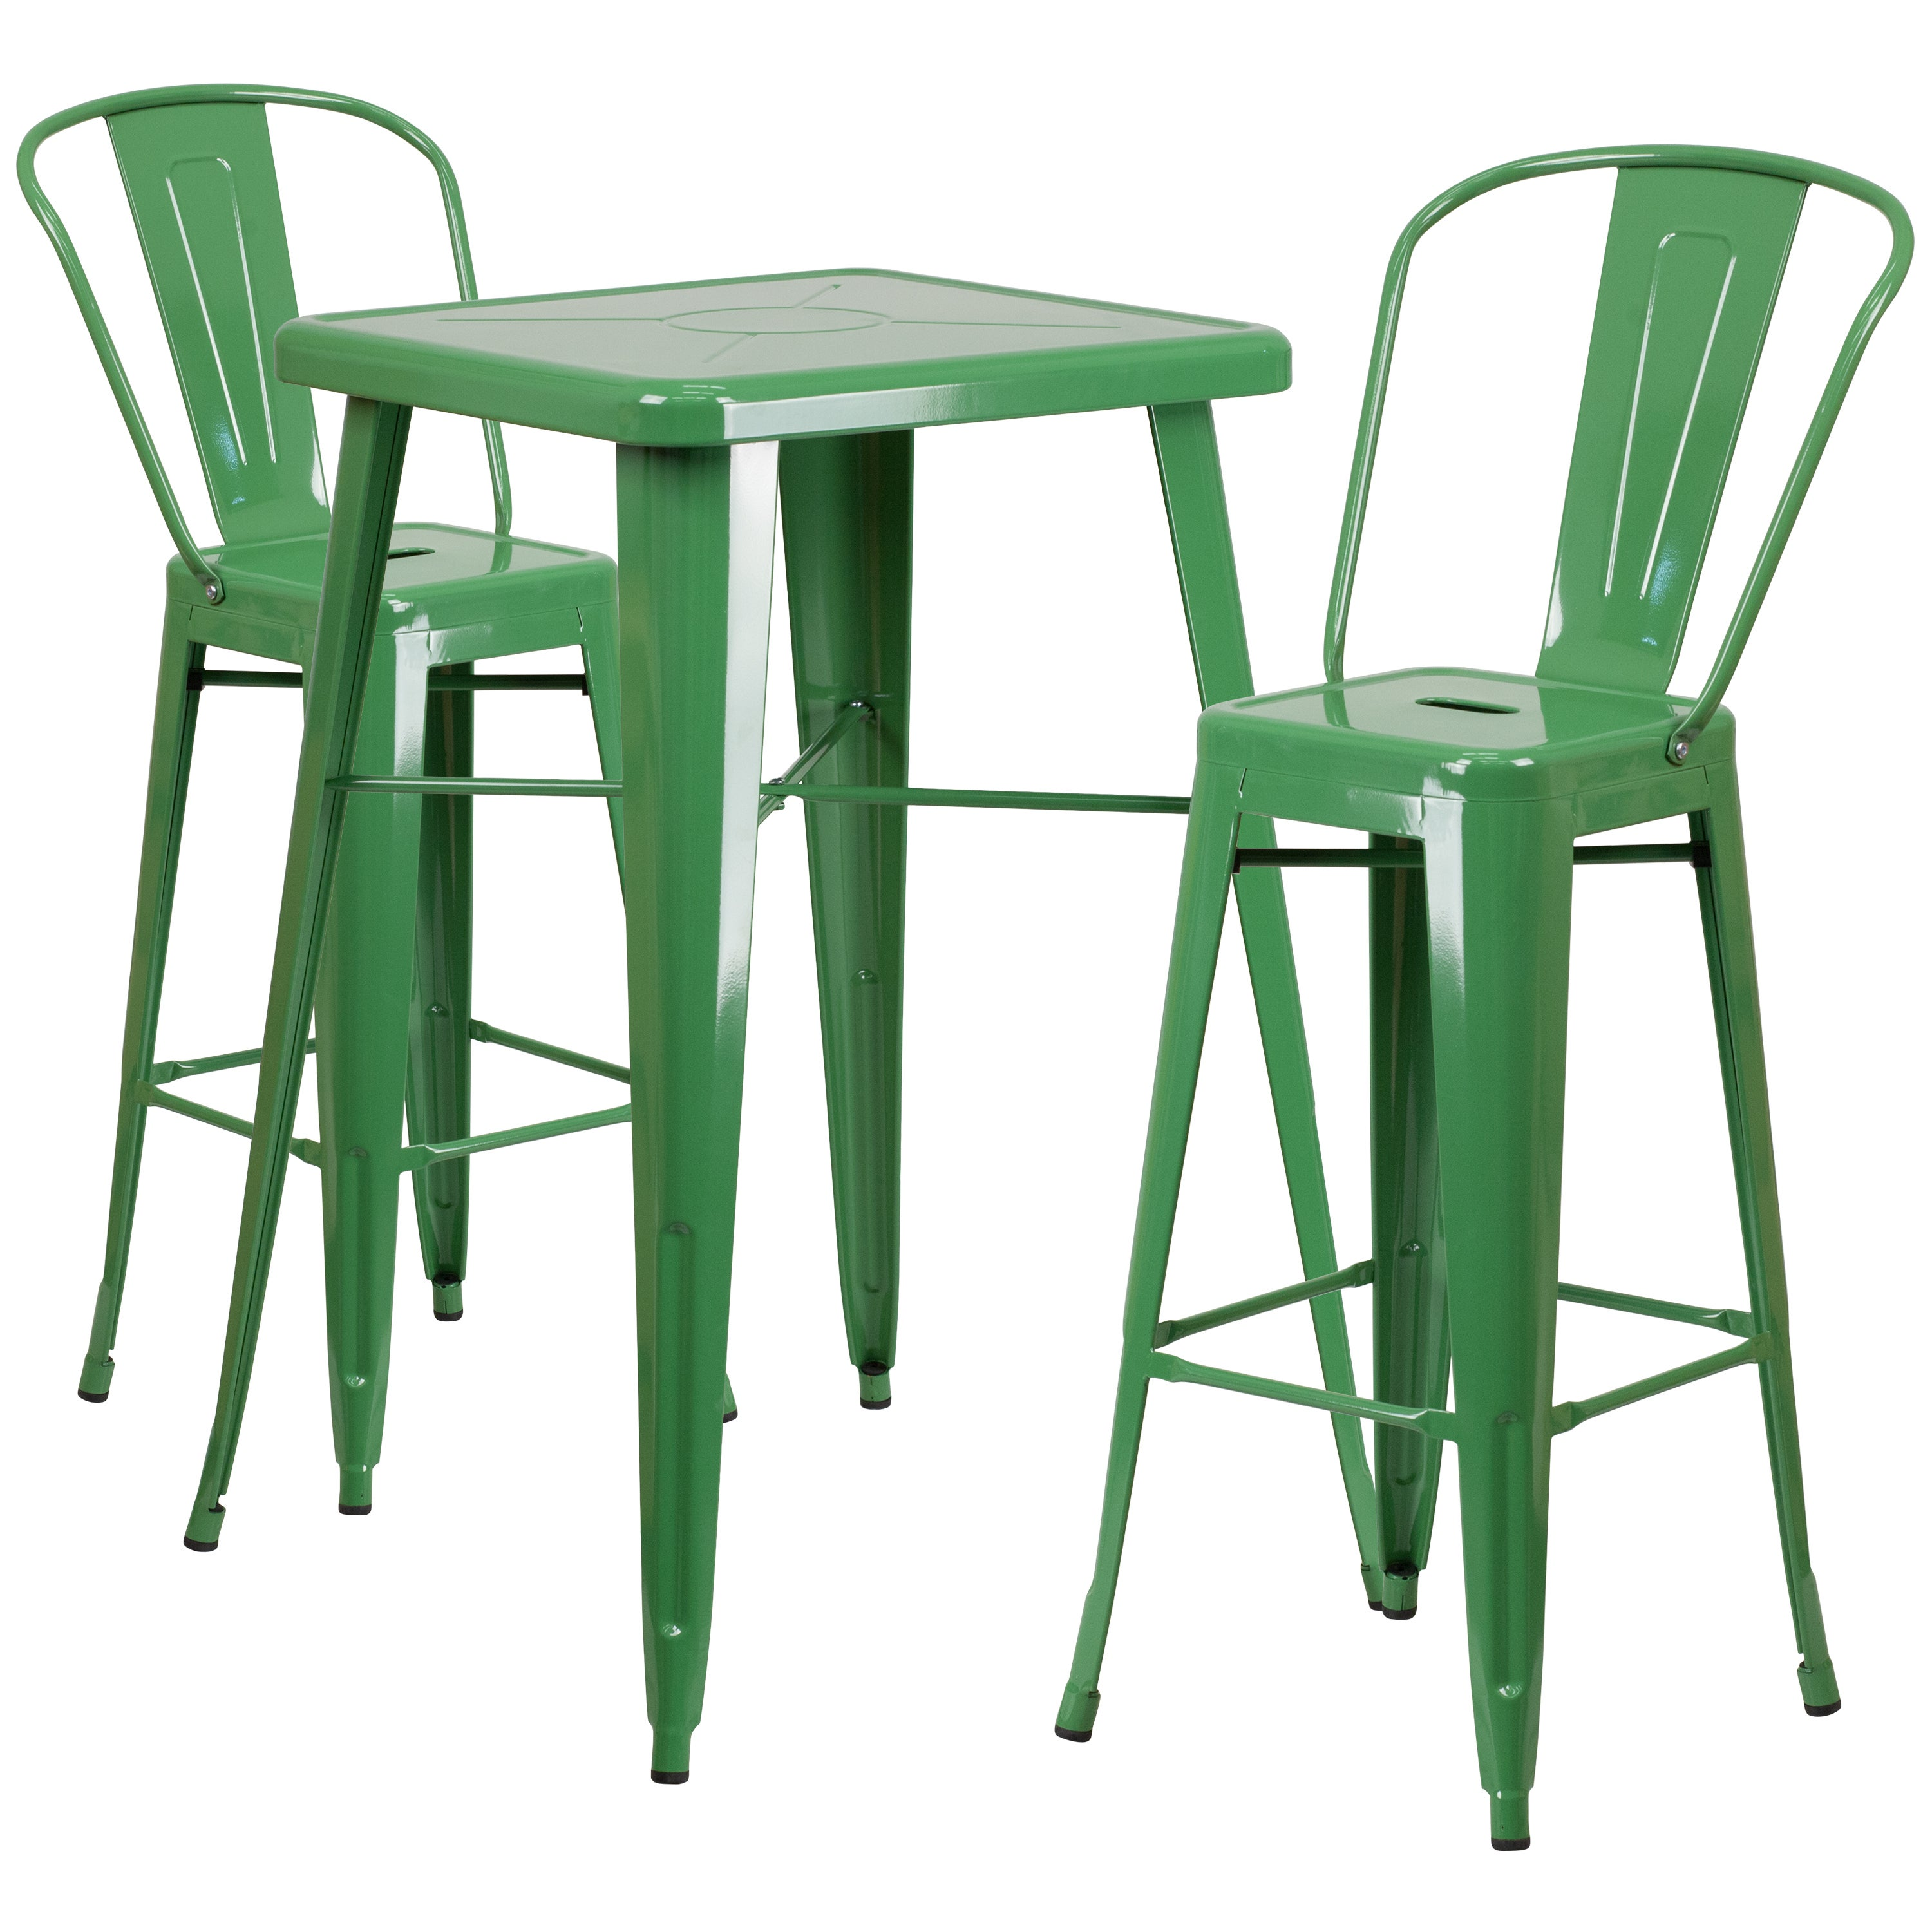 Shop Carbon Loft Fowler Metal Indoor-Outdoor Bar Table Set with 2 Barstools - Free Shipping Today - Overstock.com - 20009763  sc 1 st  Overstock.com & Shop Carbon Loft Fowler Metal Indoor-Outdoor Bar Table Set with 2 ...